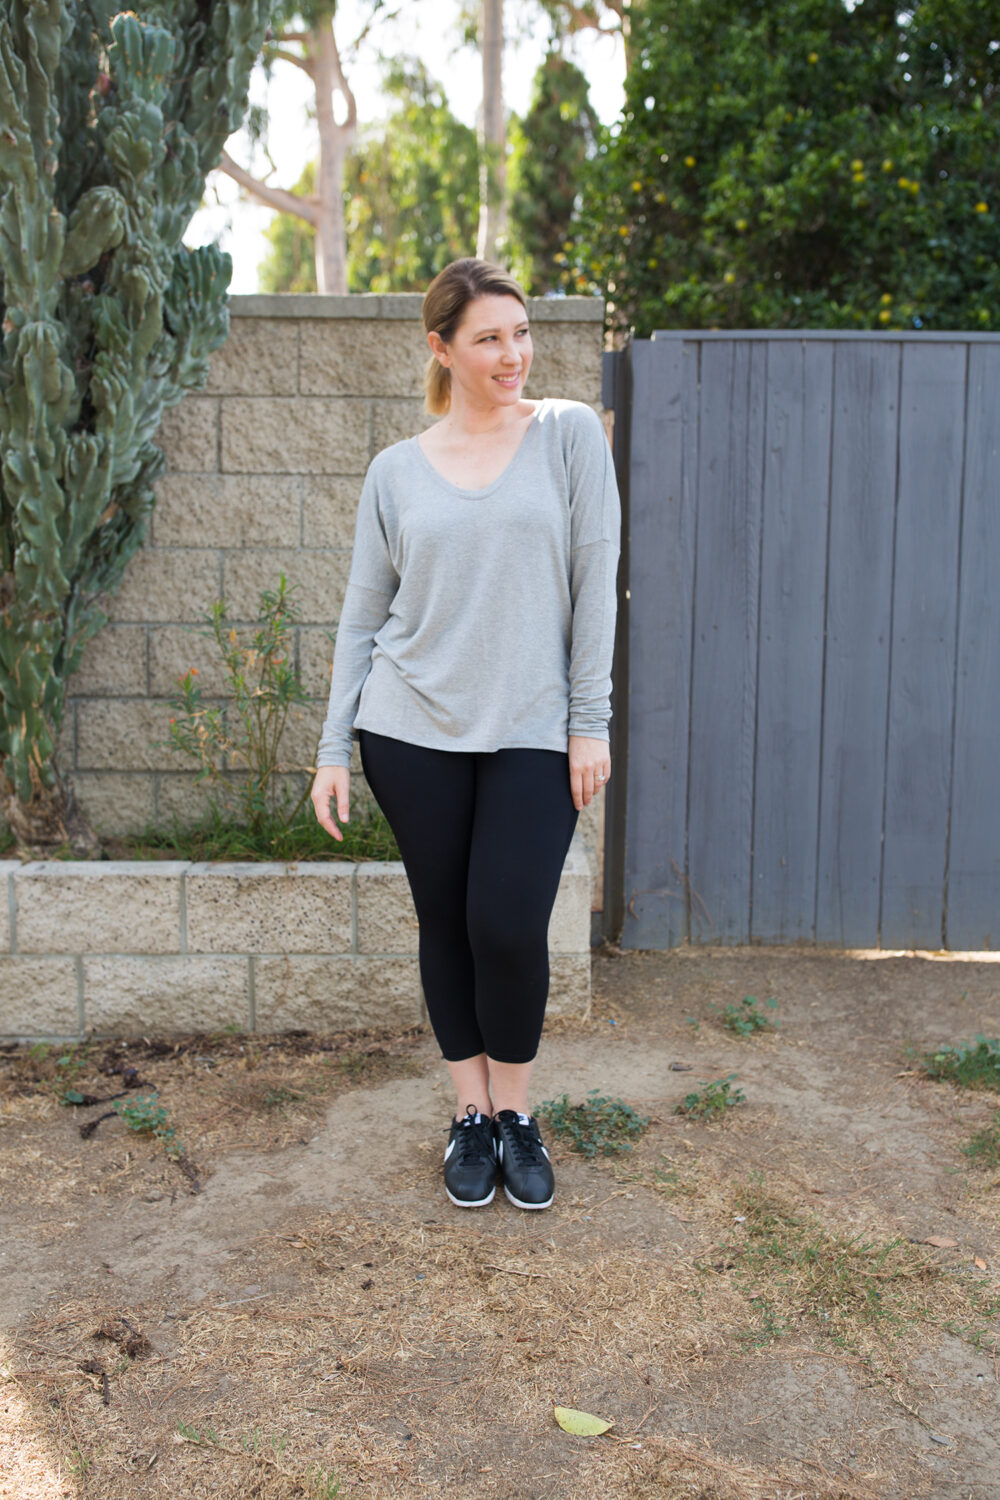 Looking for black workout pants? These Zella leggings are GREAT on a pear shape body!